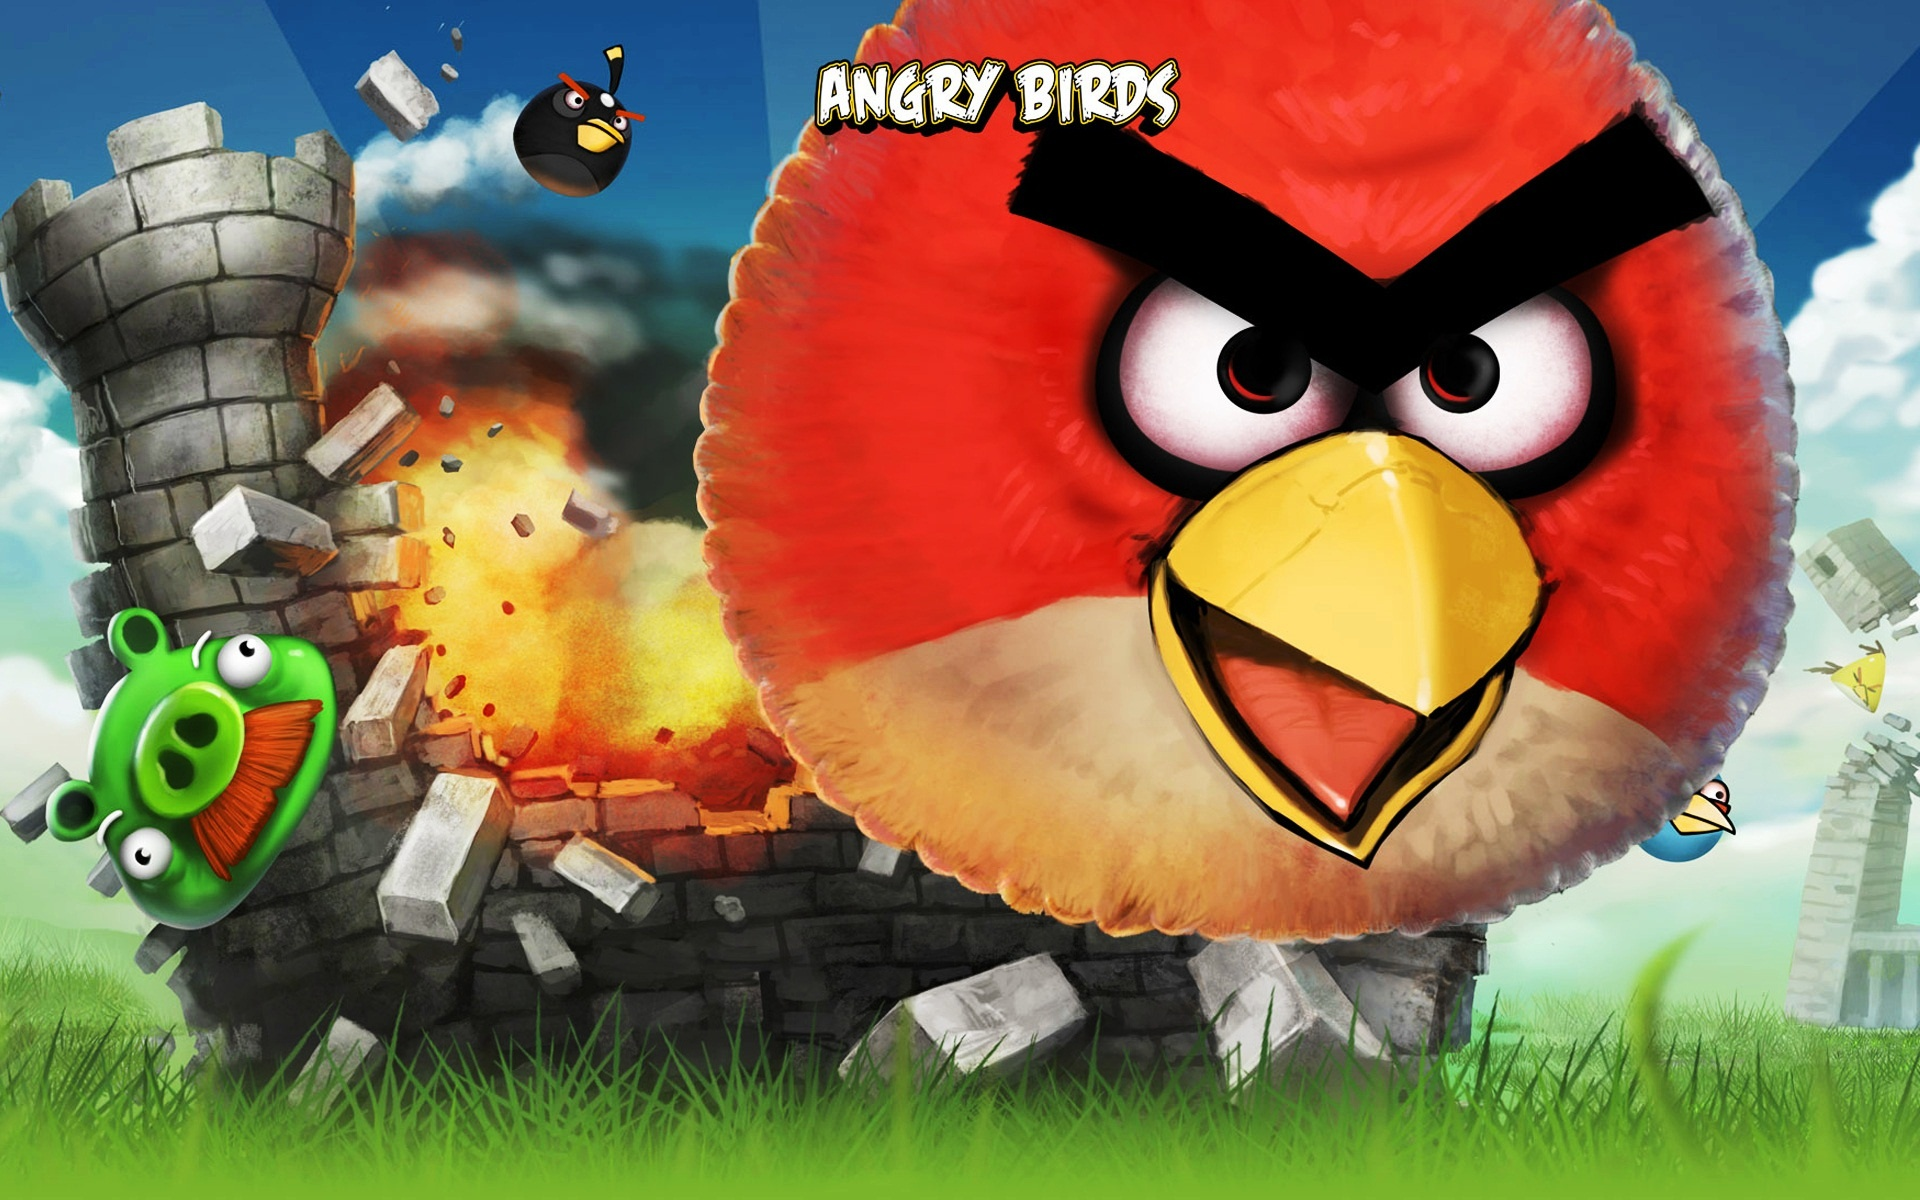 angry birds wallpapers | angry birds stock photos